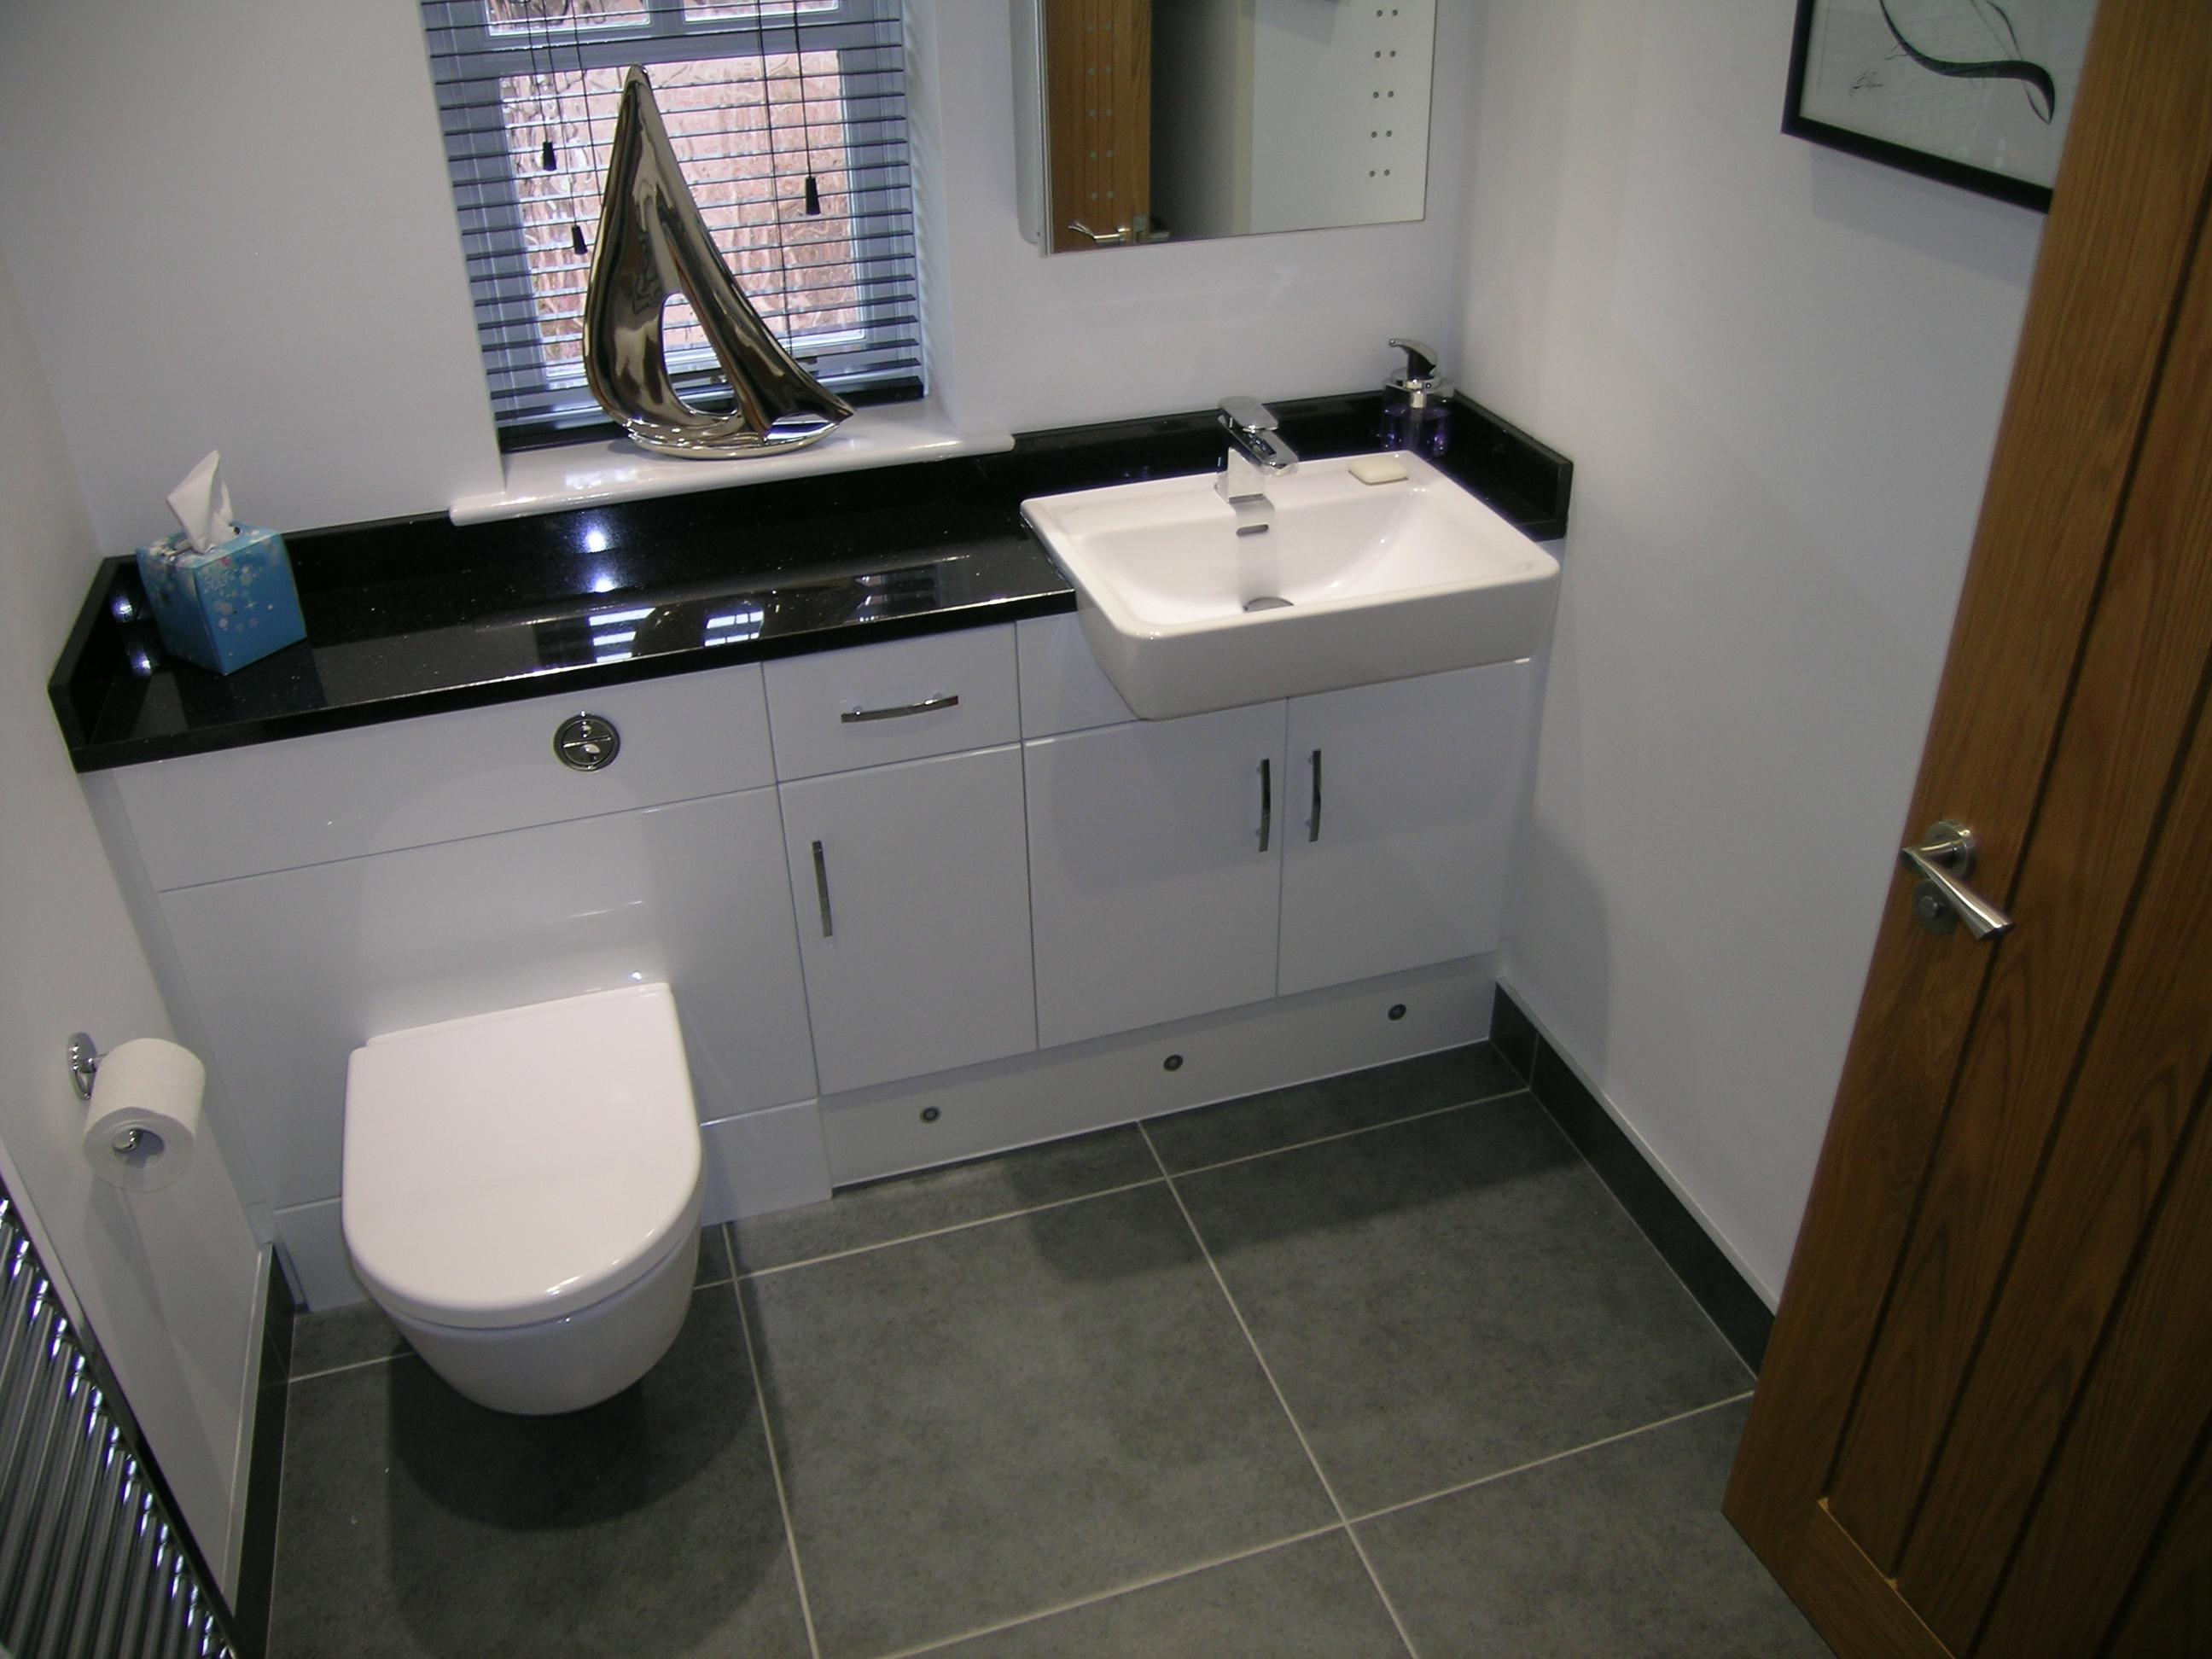 Bathroom fitters birmingham bathroom birmingham b for Bathroom design birmingham